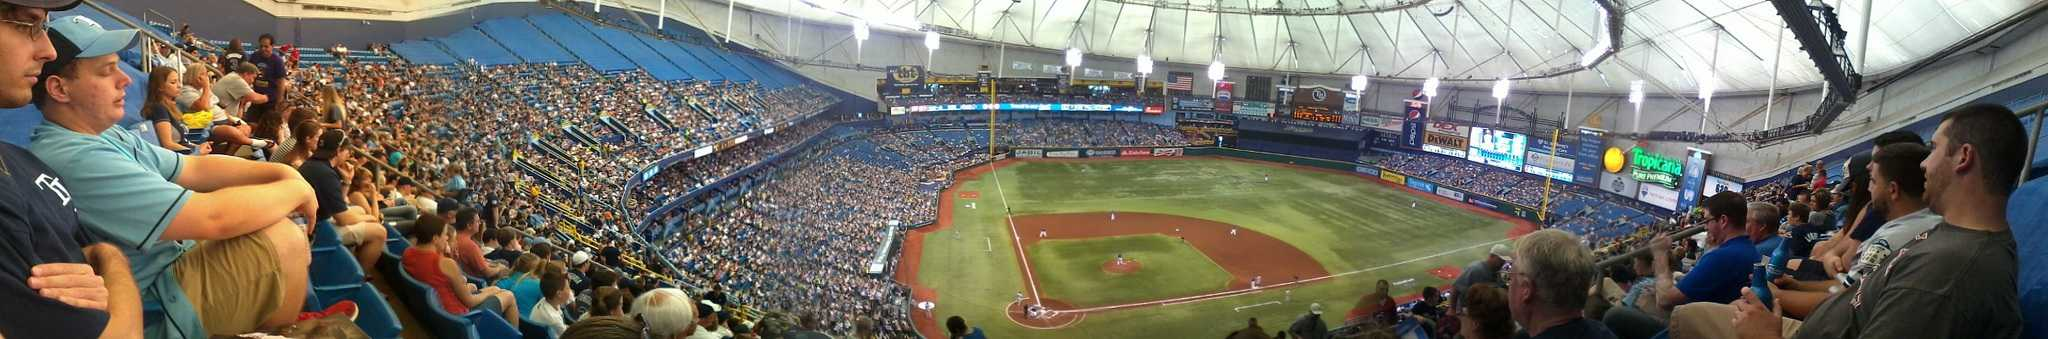 Panorama of Tropicana Field